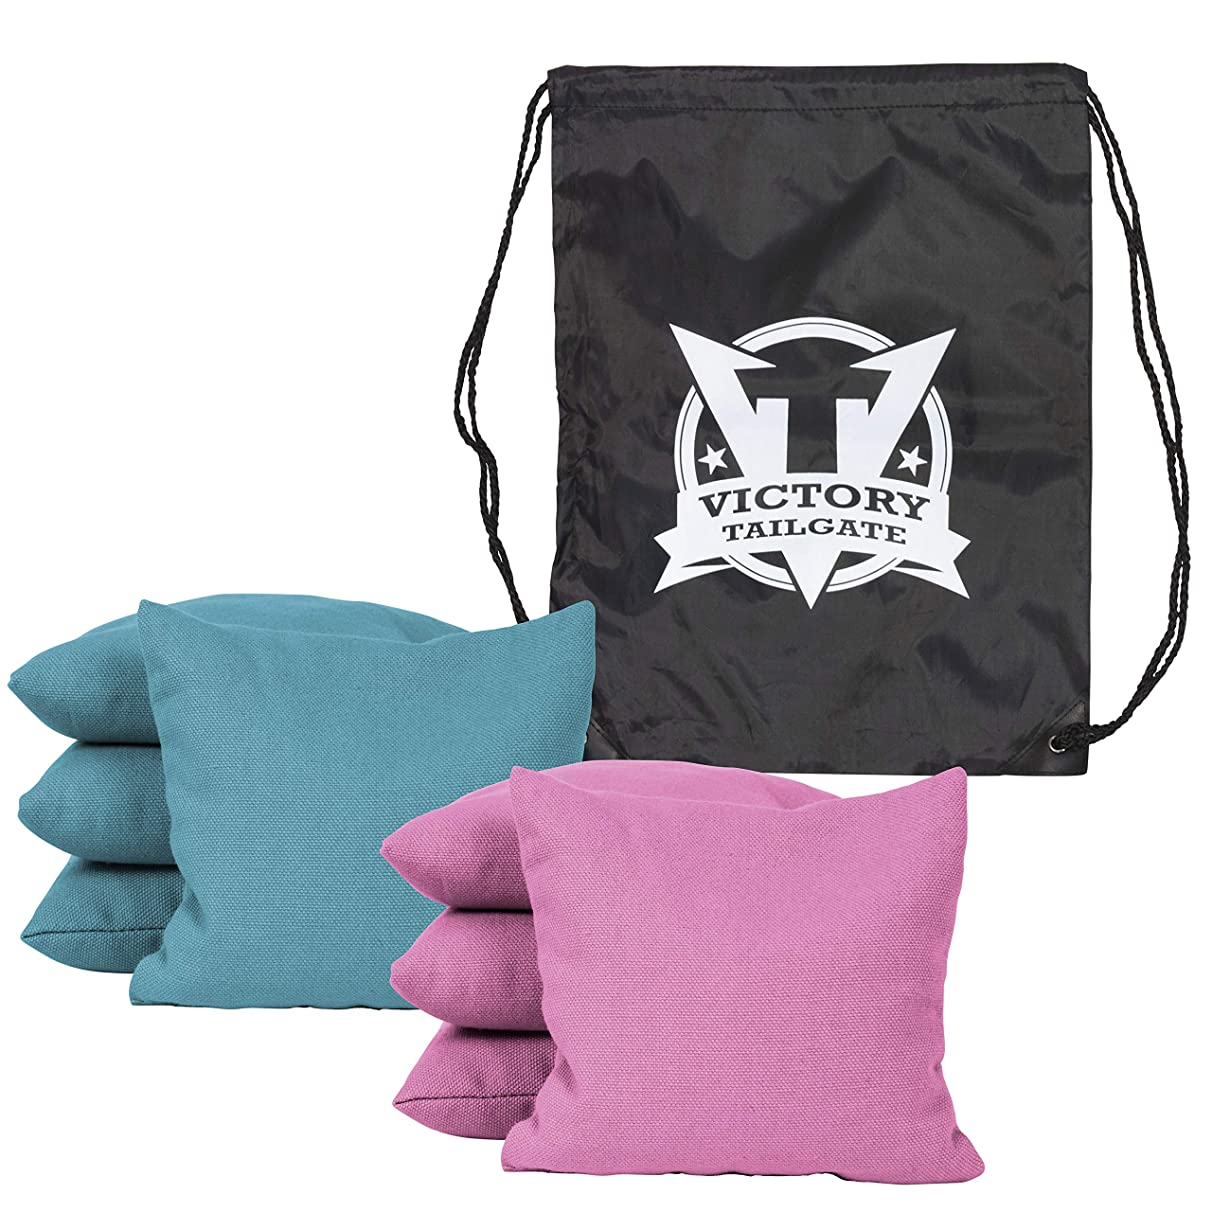 Victory Tailgate 8 Colored Corn Filled Regulation Cornhole Bags with Drawstring Pack (4 Black, 4 Gold)